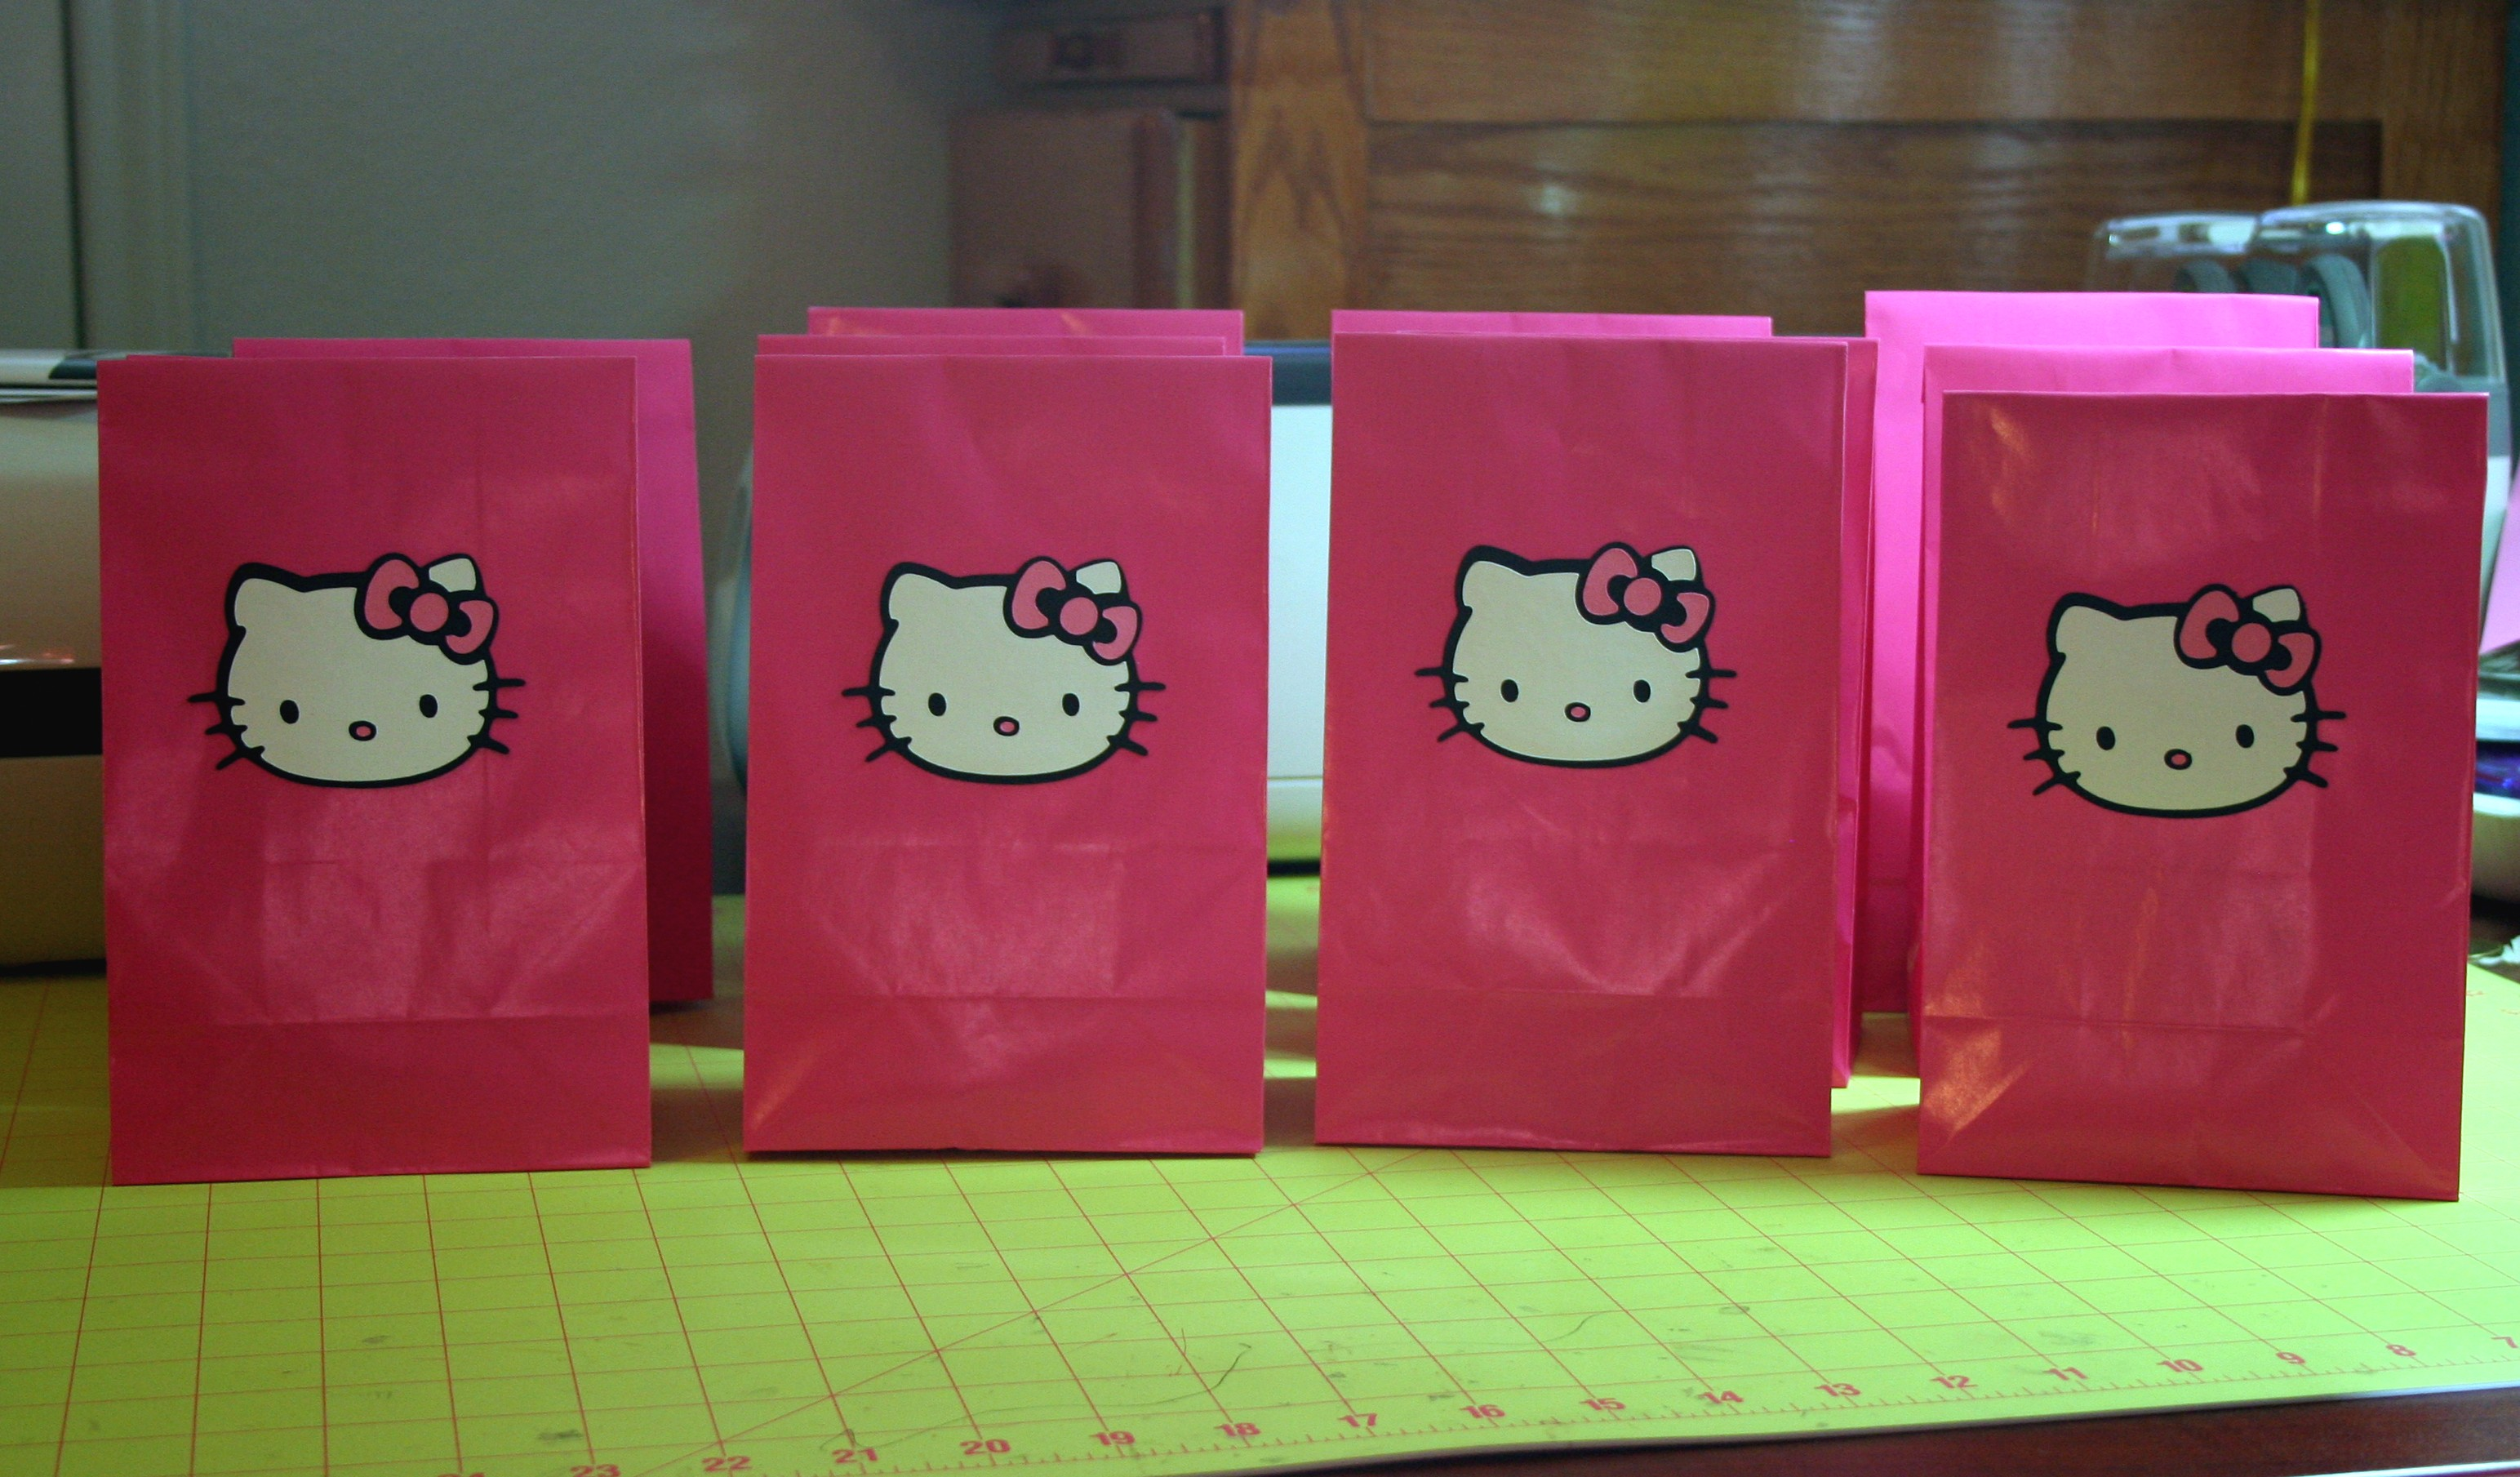 Other hello kitty goodie bags